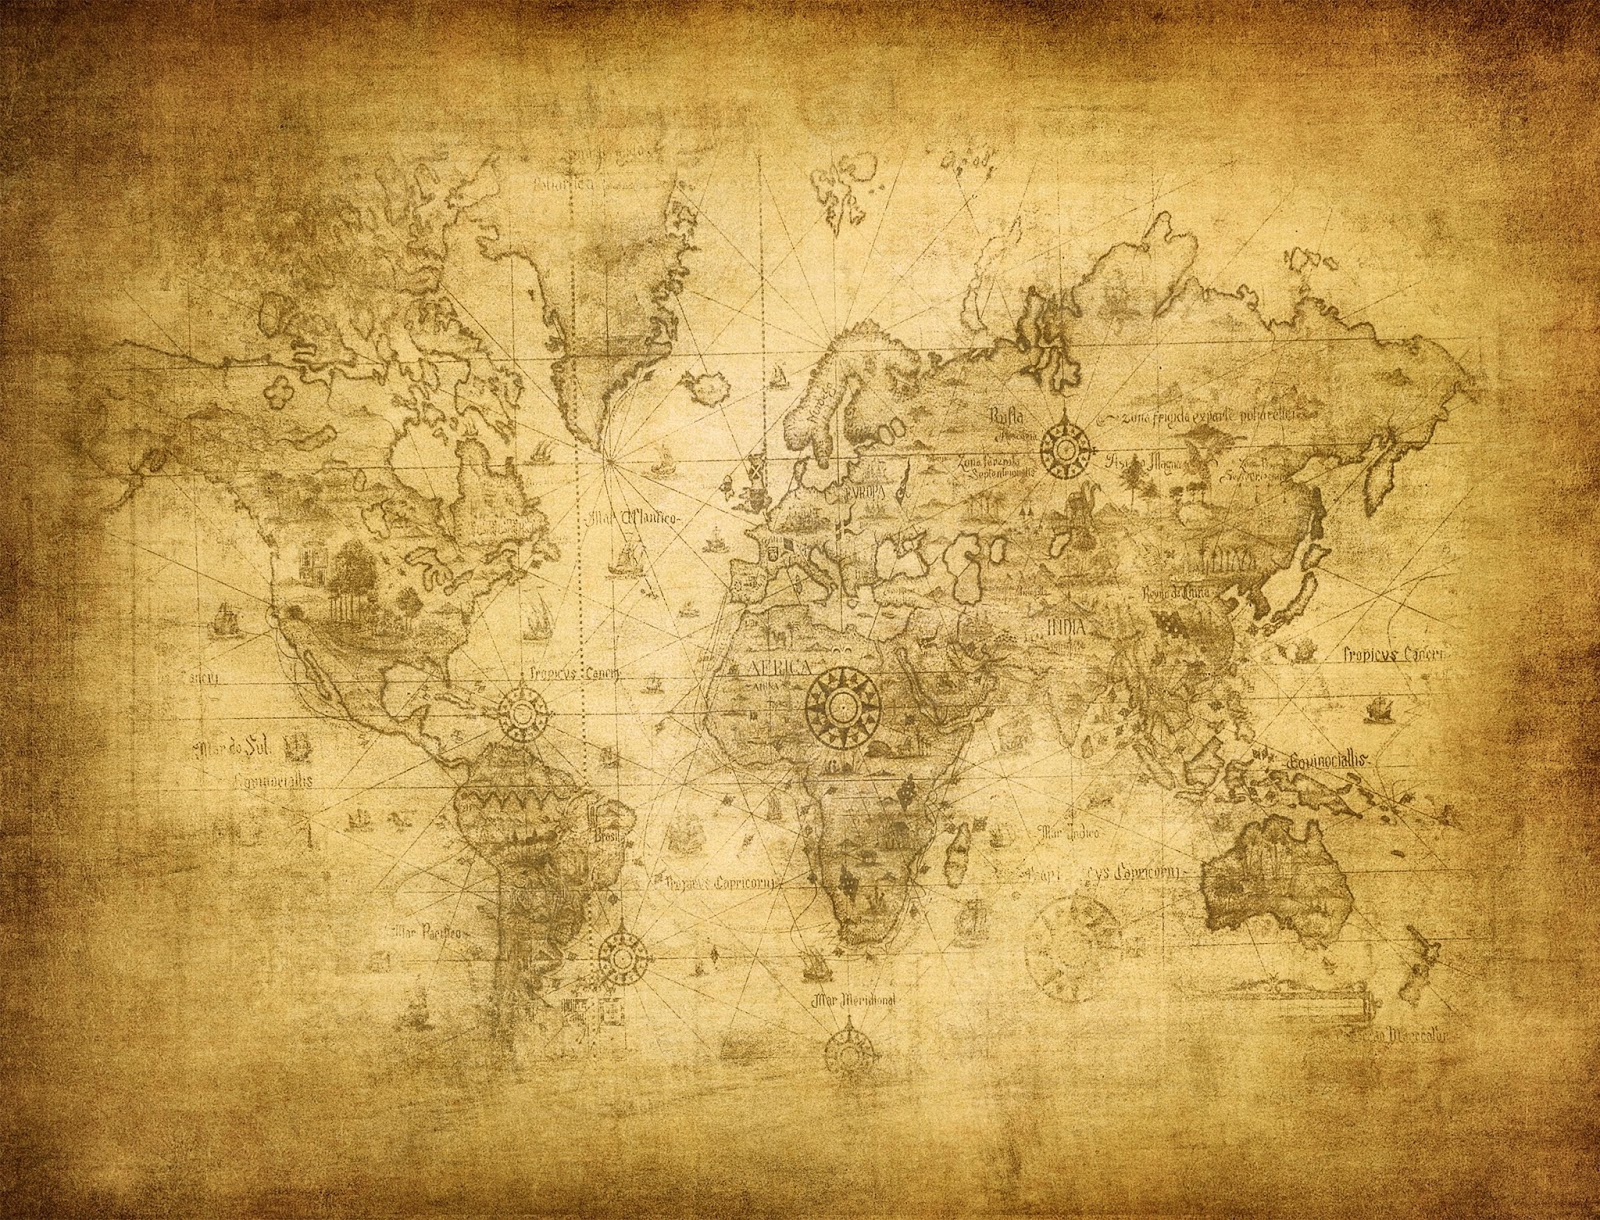 Free download would like to use this old map as the ... on magazine background, newspaper background, old nautical maps, paper background, wood background, old world cartography, key background, old wallpaper, bouquet background, old compass, old boats, old us highway maps, old treasure maps, space background, city background,